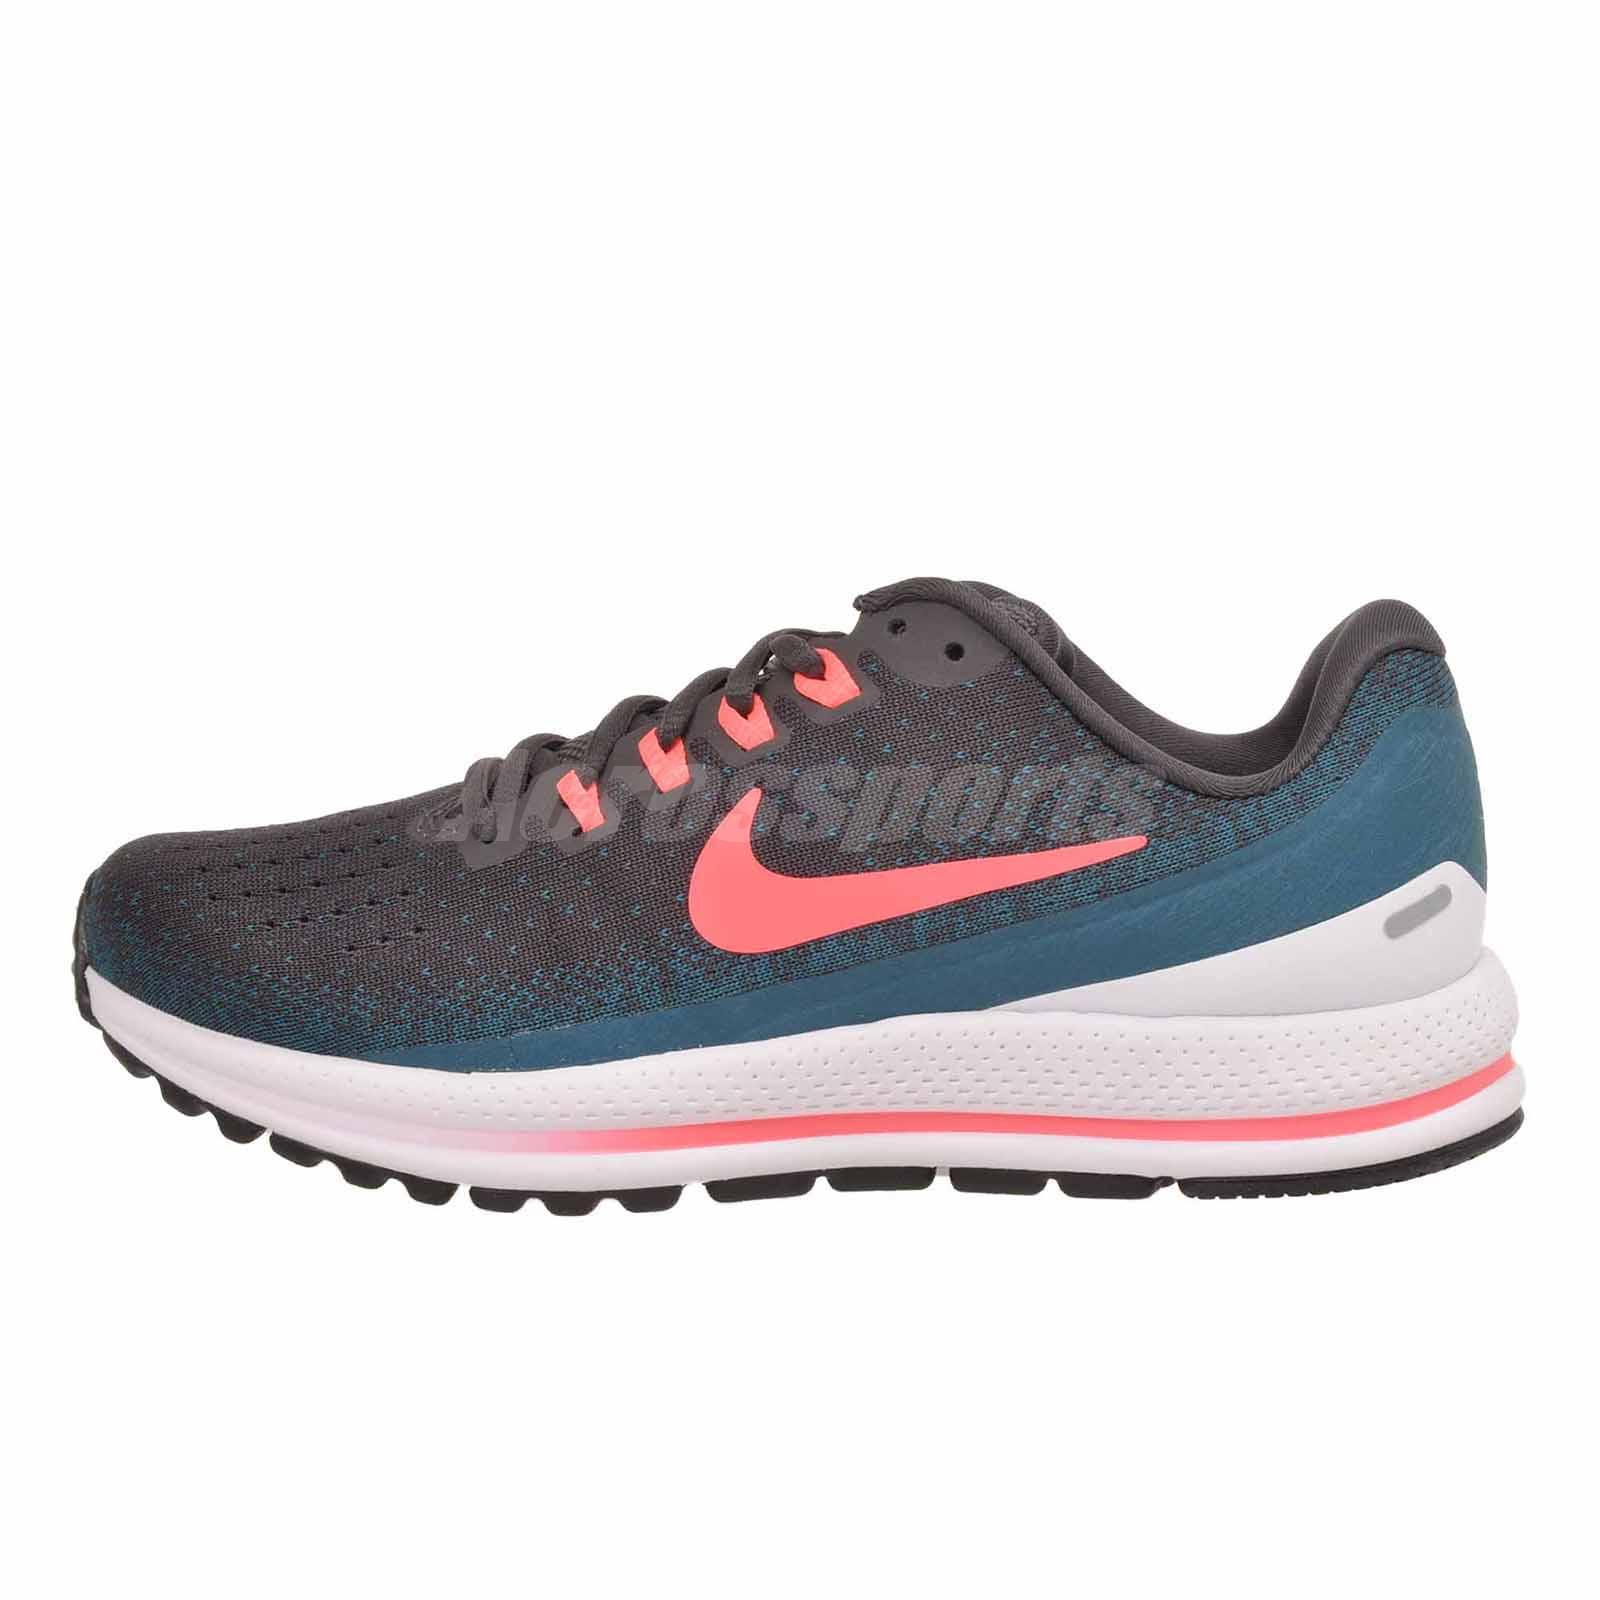 82993d090ff5 Nike Air Zoom Vomero 13 Running Womens Shoes Grey Blue Punch 922909 ...